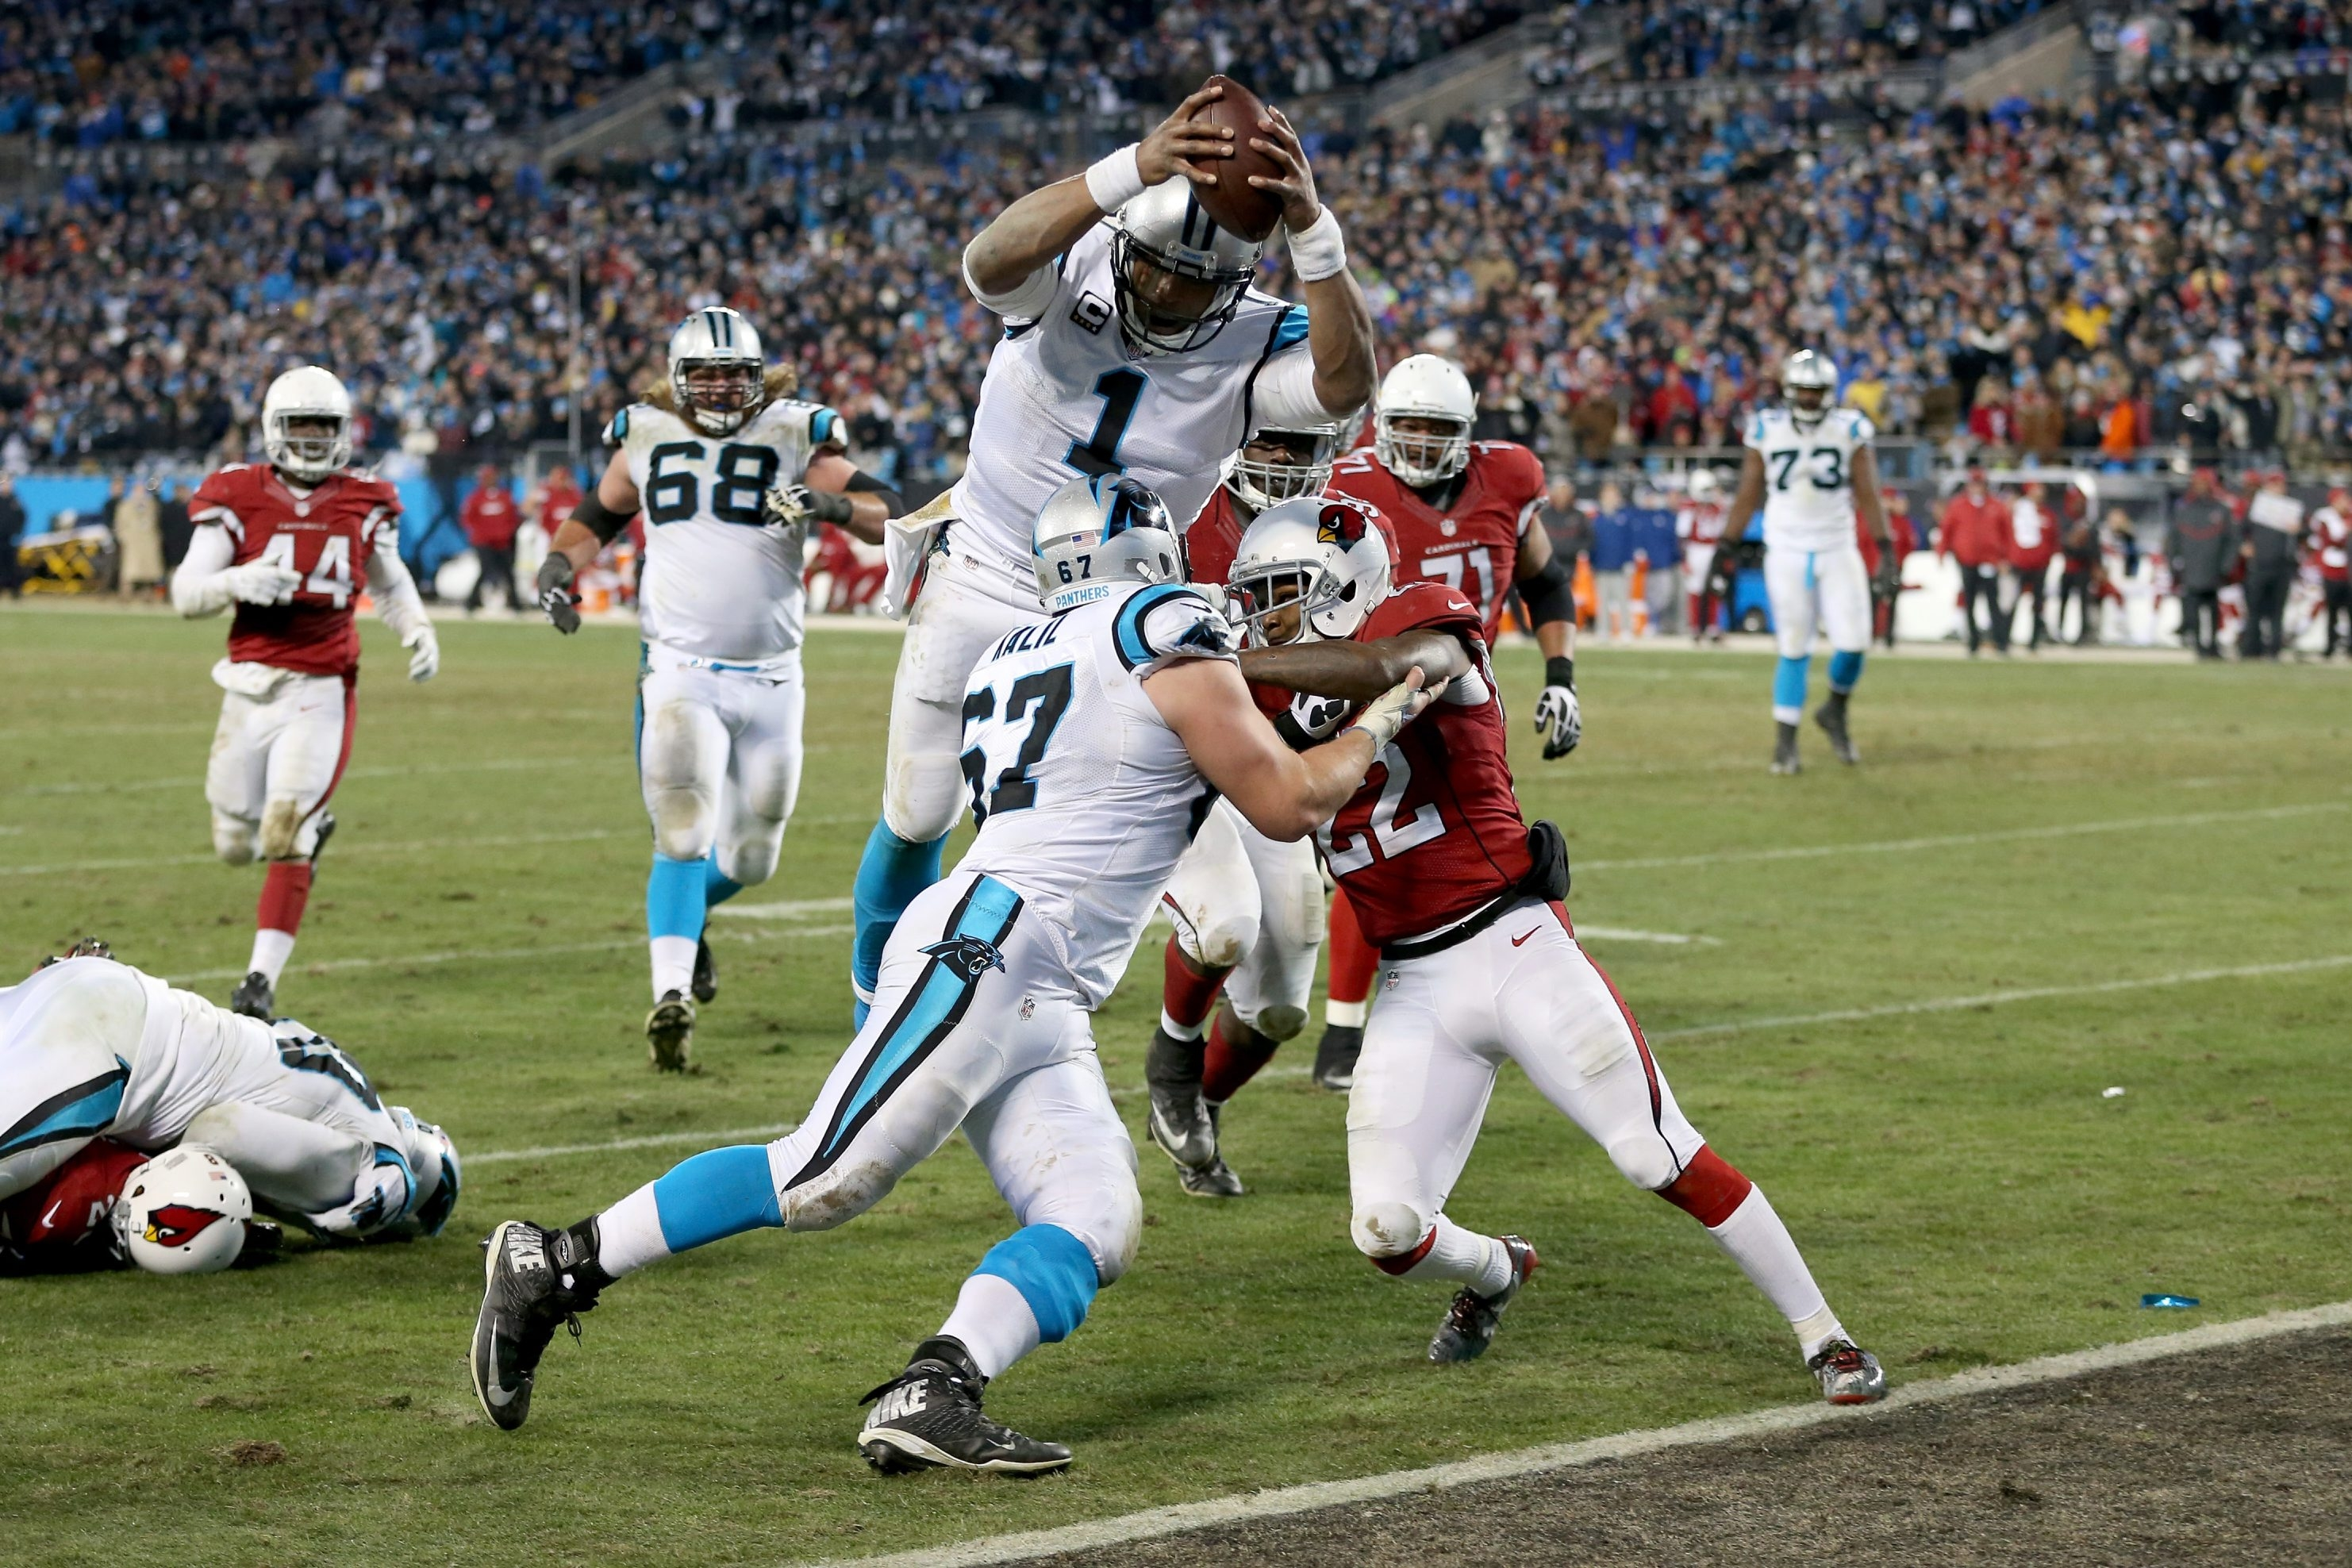 Carolina Panthers quarterback Cam Newton (1) goes for the touchdown against the Arizona Cardinals during the NFC Championship Game at Bank of America Stadium on Jan. 24, 2016, in Charlotte, N.C.